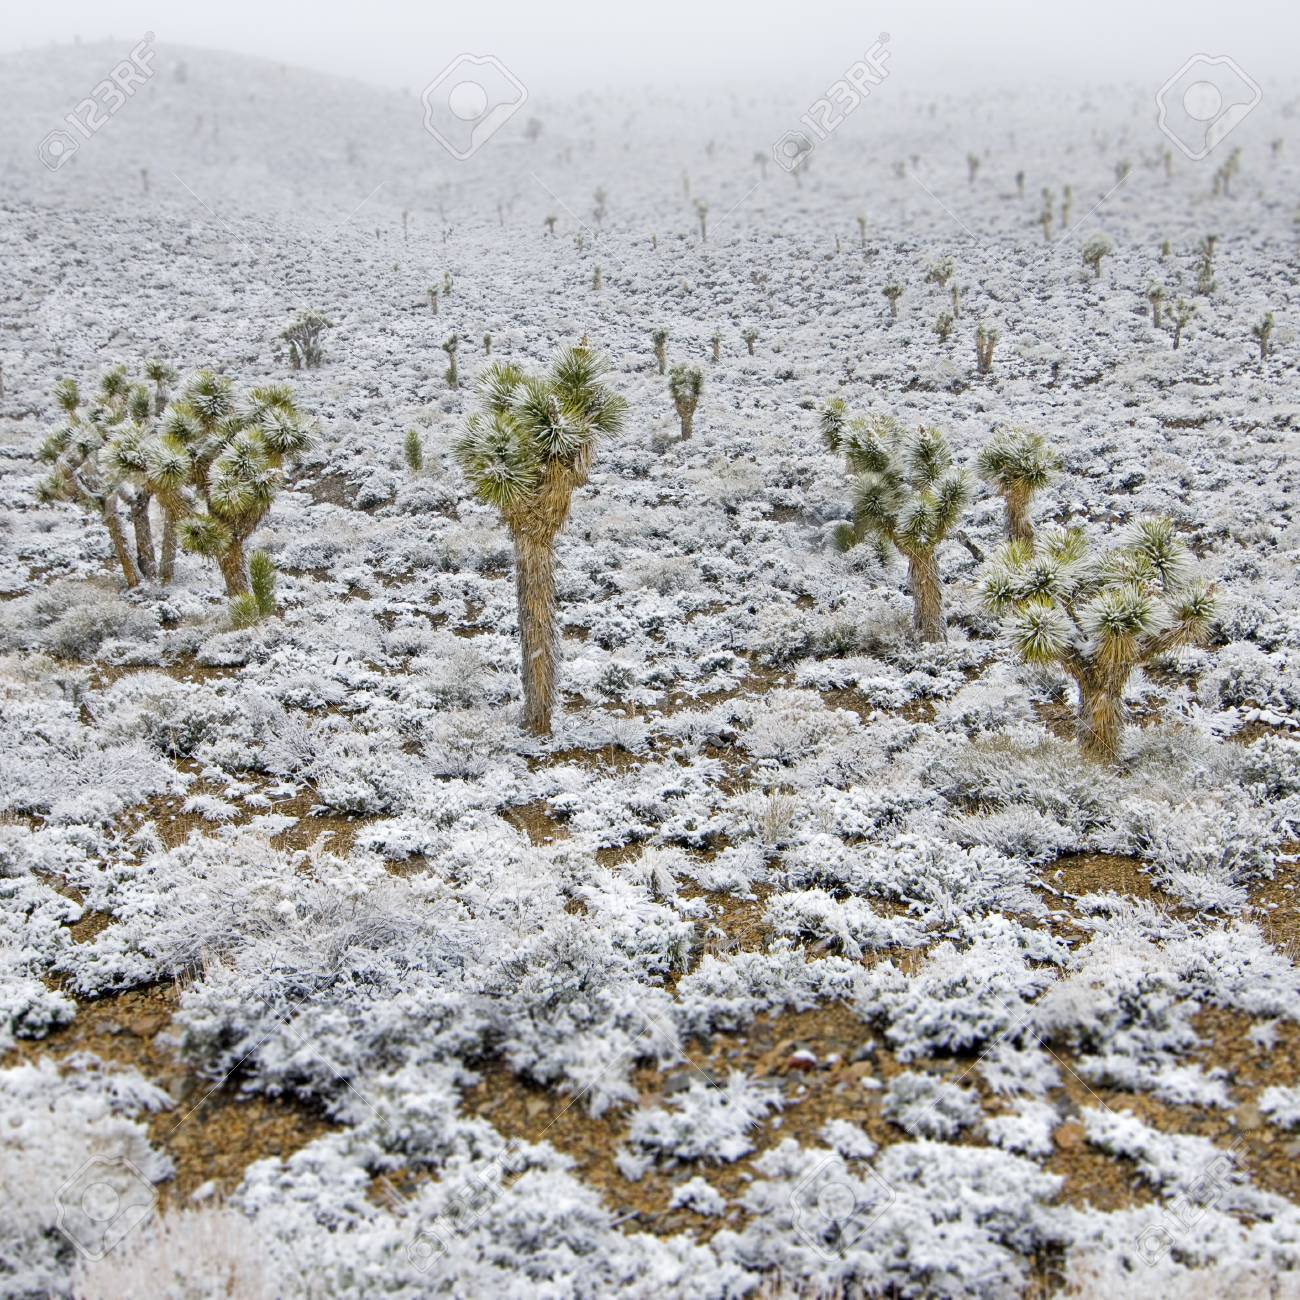 Snow Covered Joshua Trees In Death Valley National Park California